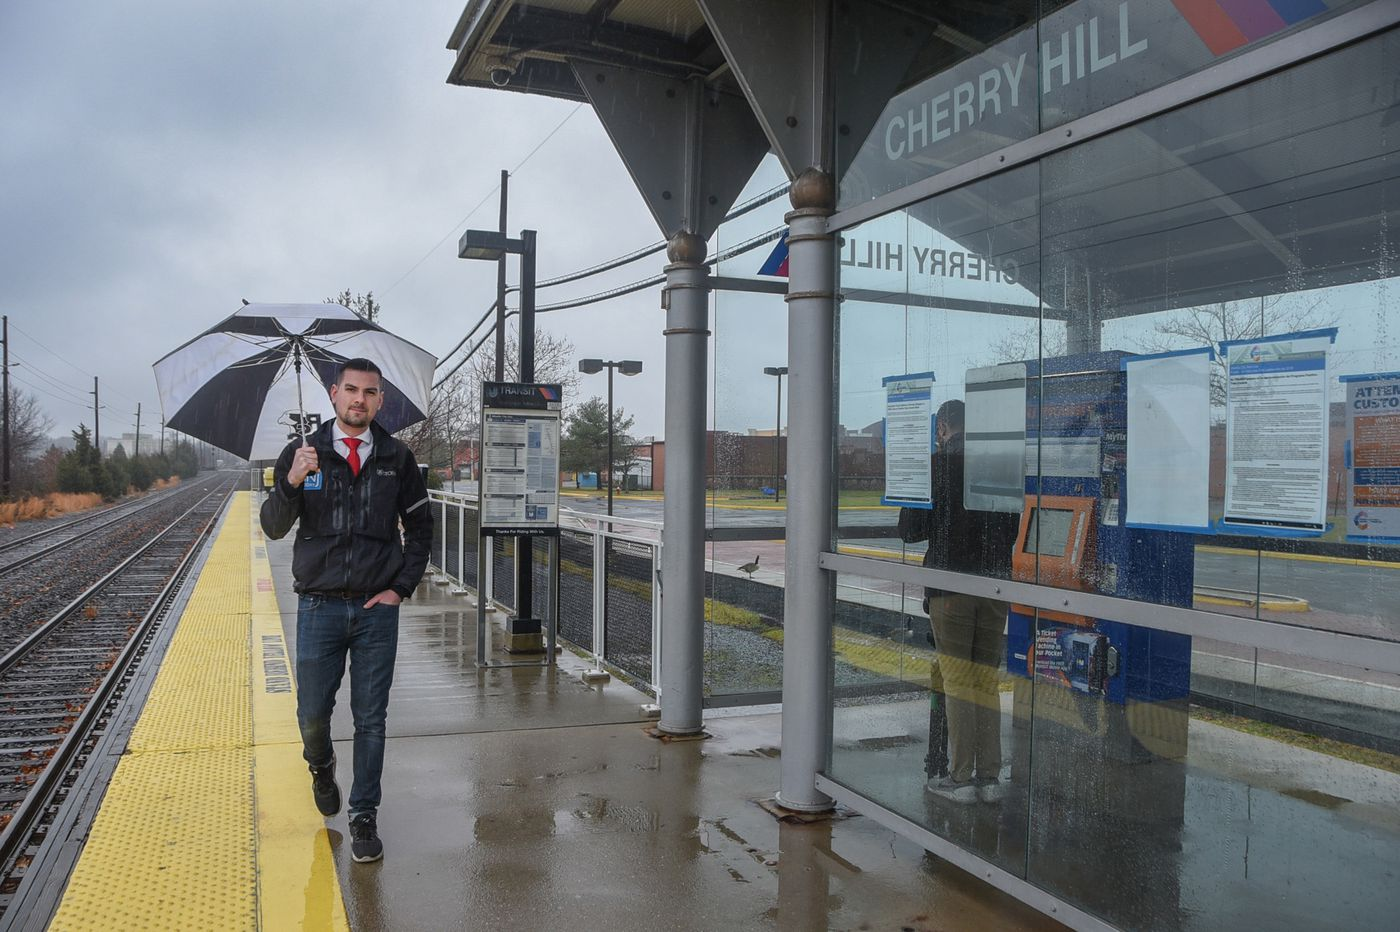 Shore weatherman predicts stormy skies if NJ Transit doesn't soon restart Atlantic City train line to Philly